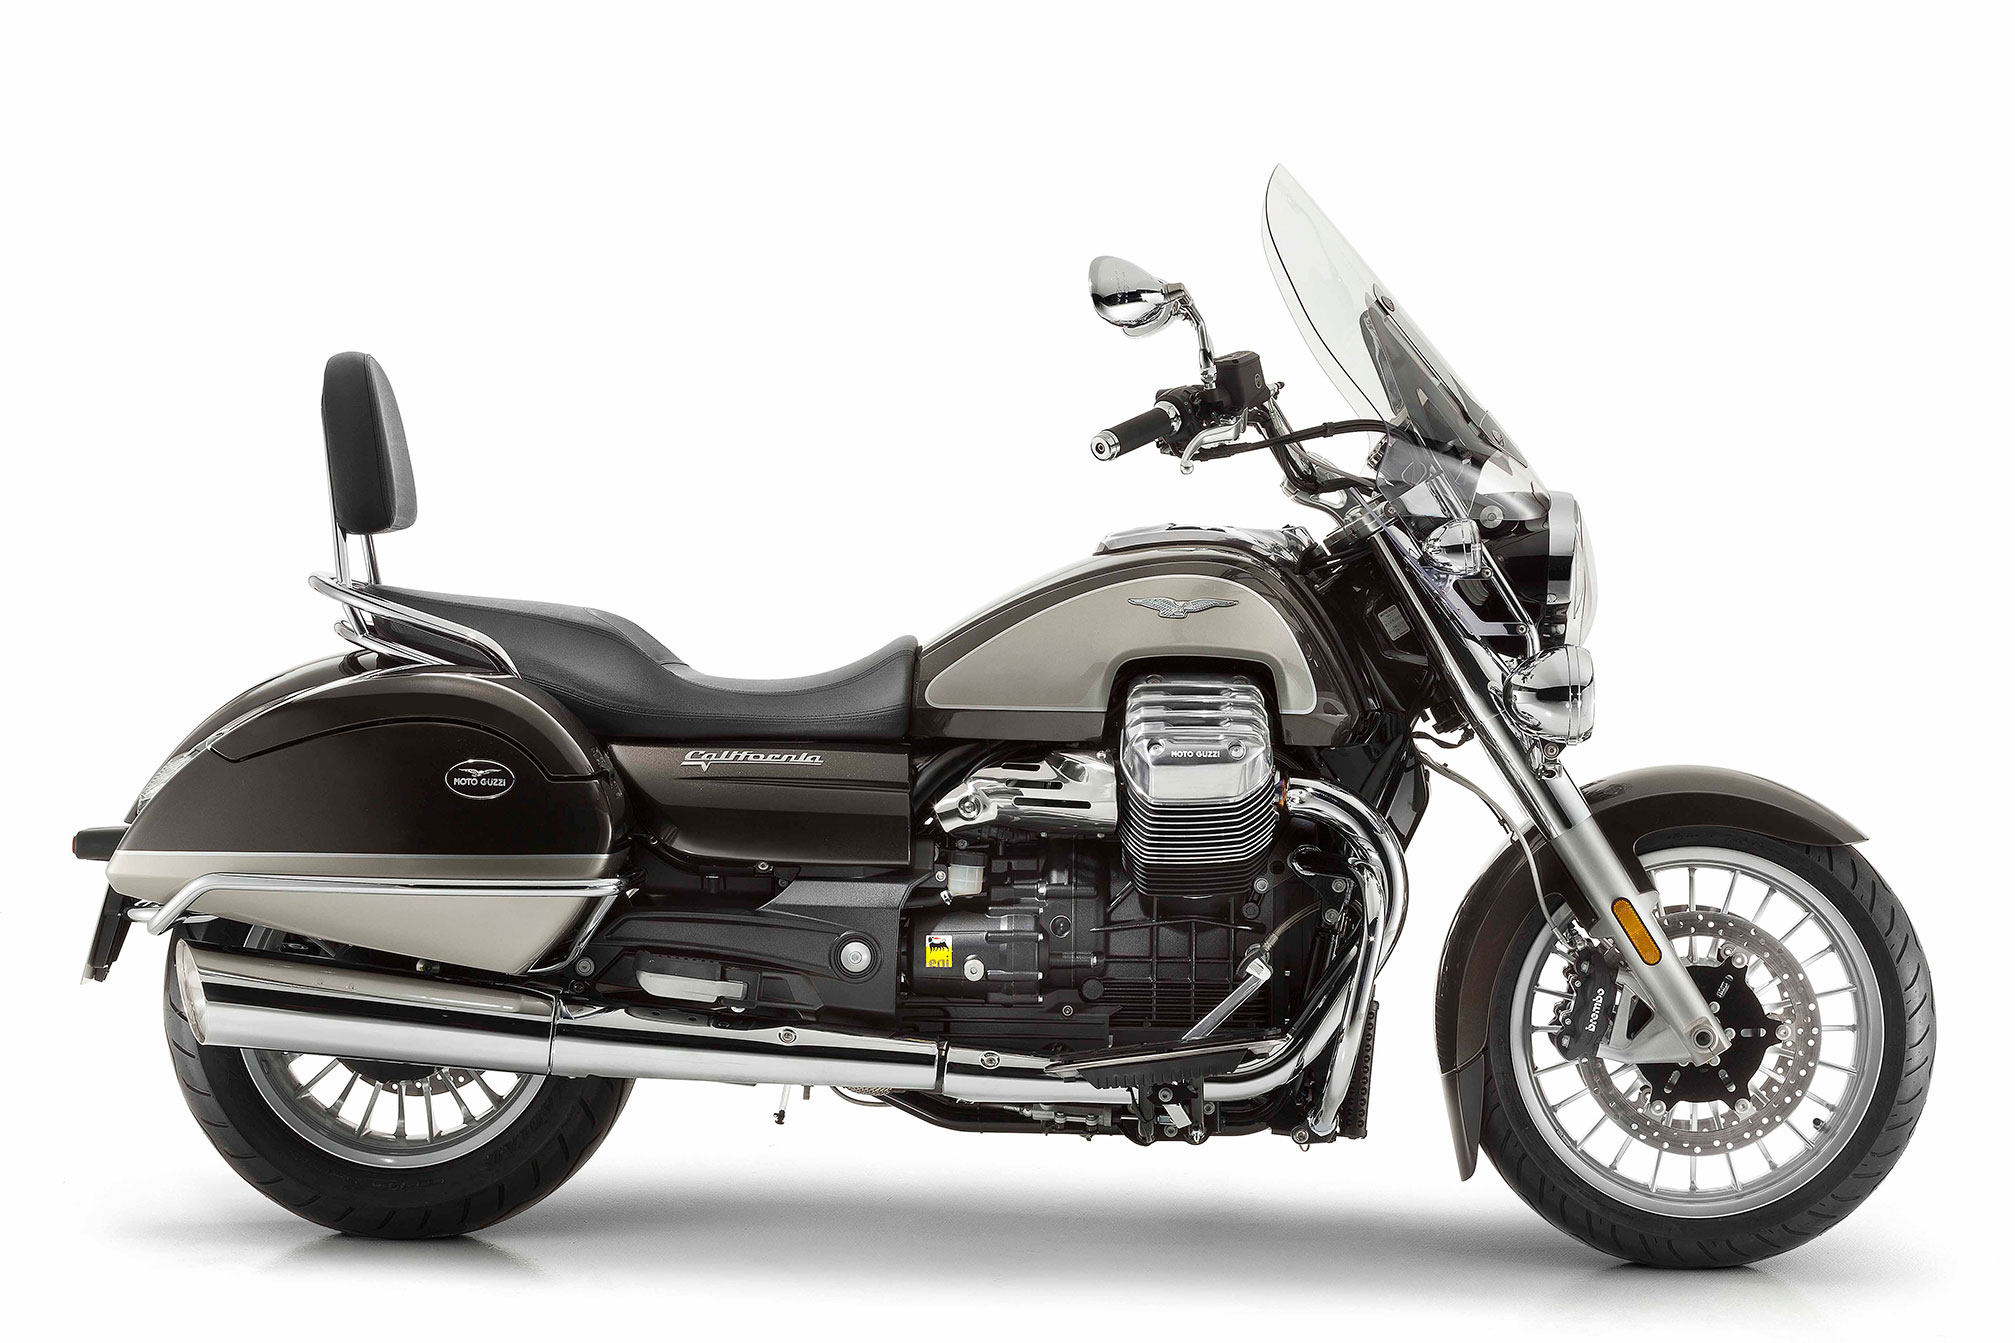 moto guzzi california 1400 touring se 2014 2015. Black Bedroom Furniture Sets. Home Design Ideas